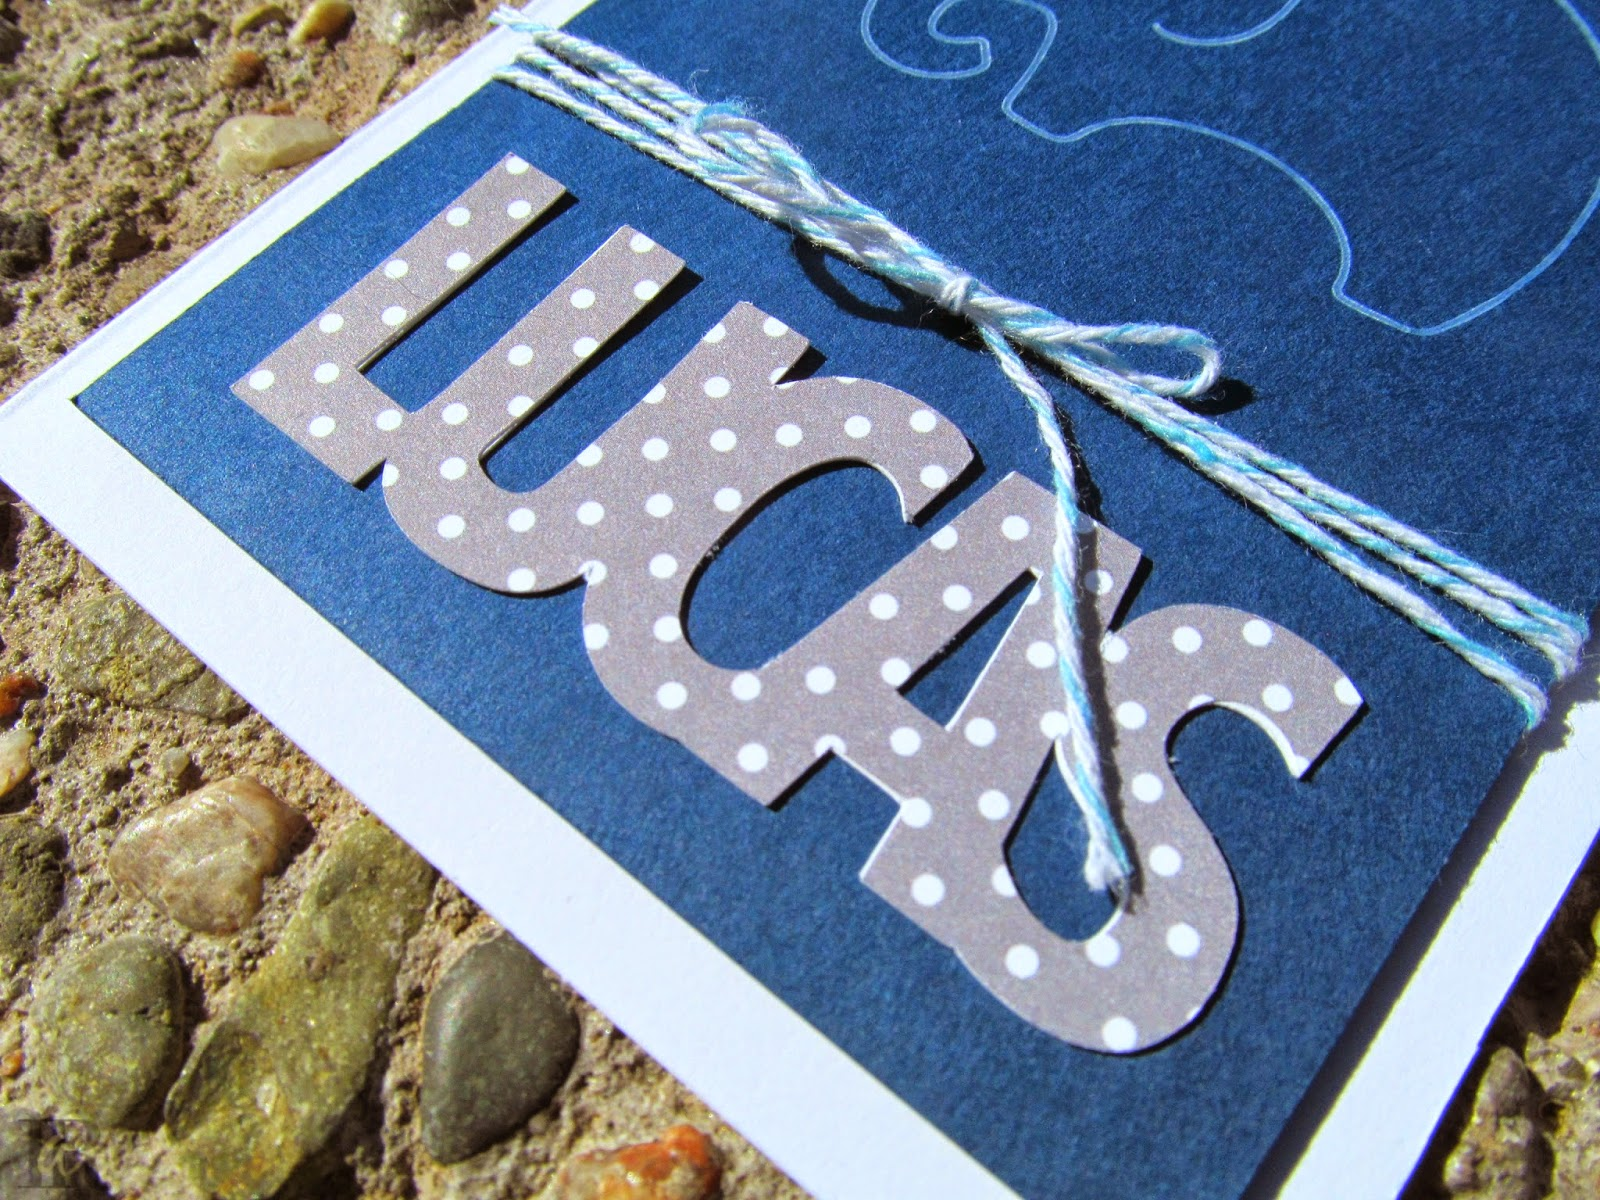 Baby Boy Name Cut Out using Silhouette Portrait